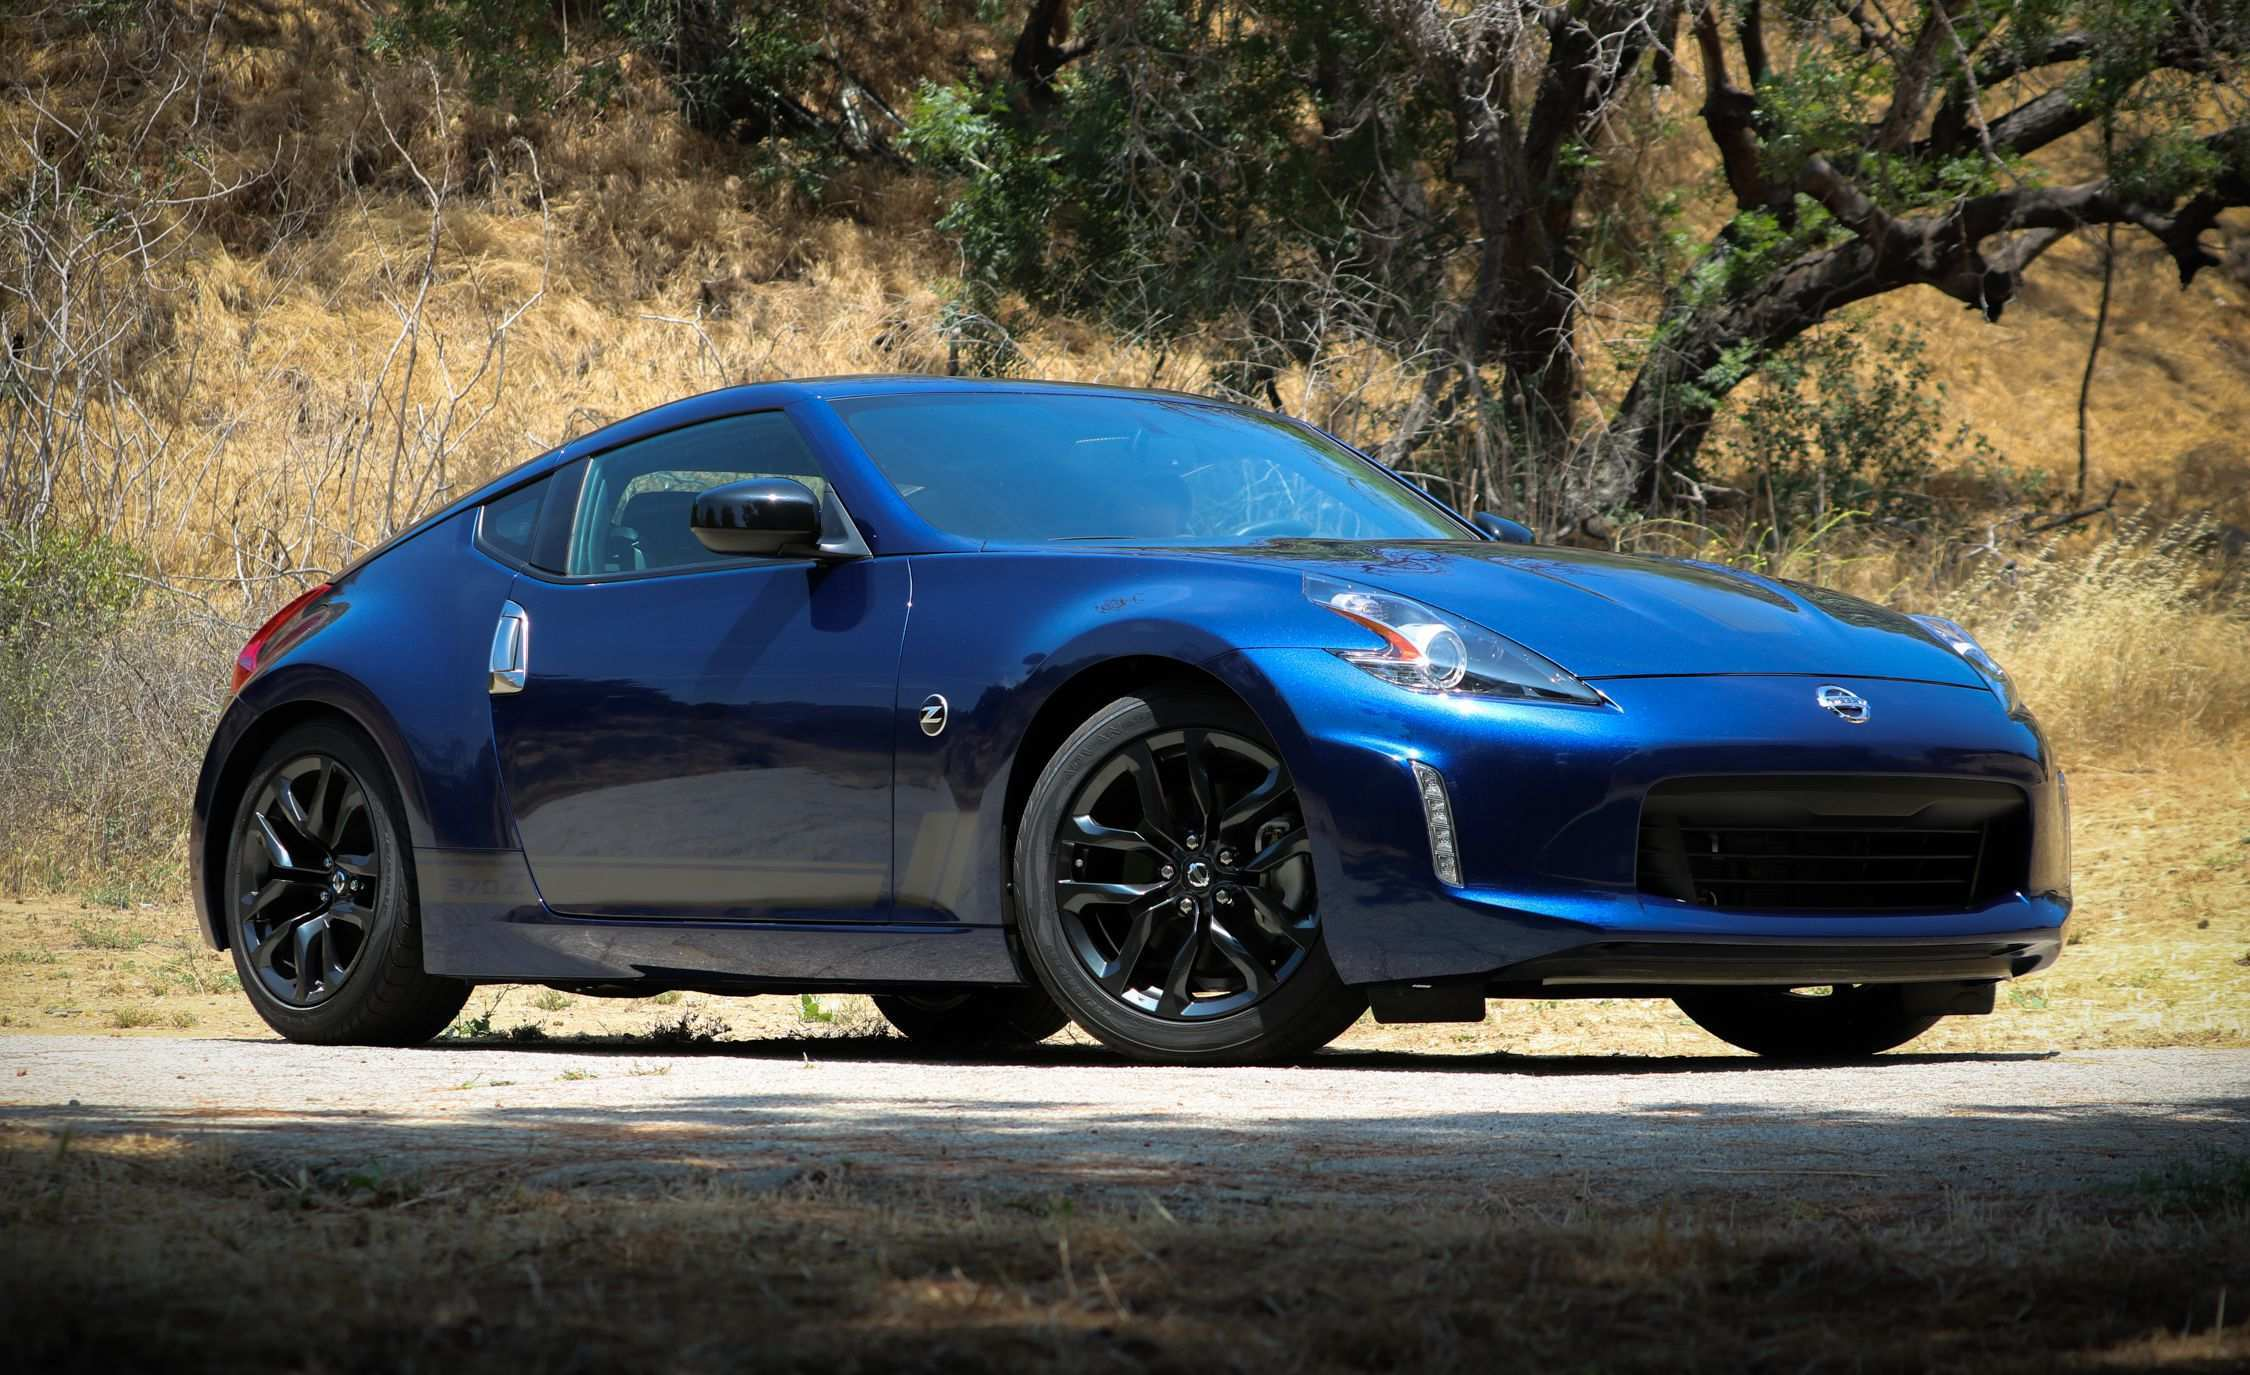 81 Best Review 2019 Nissan Z370 Rumors with 2019 Nissan Z370